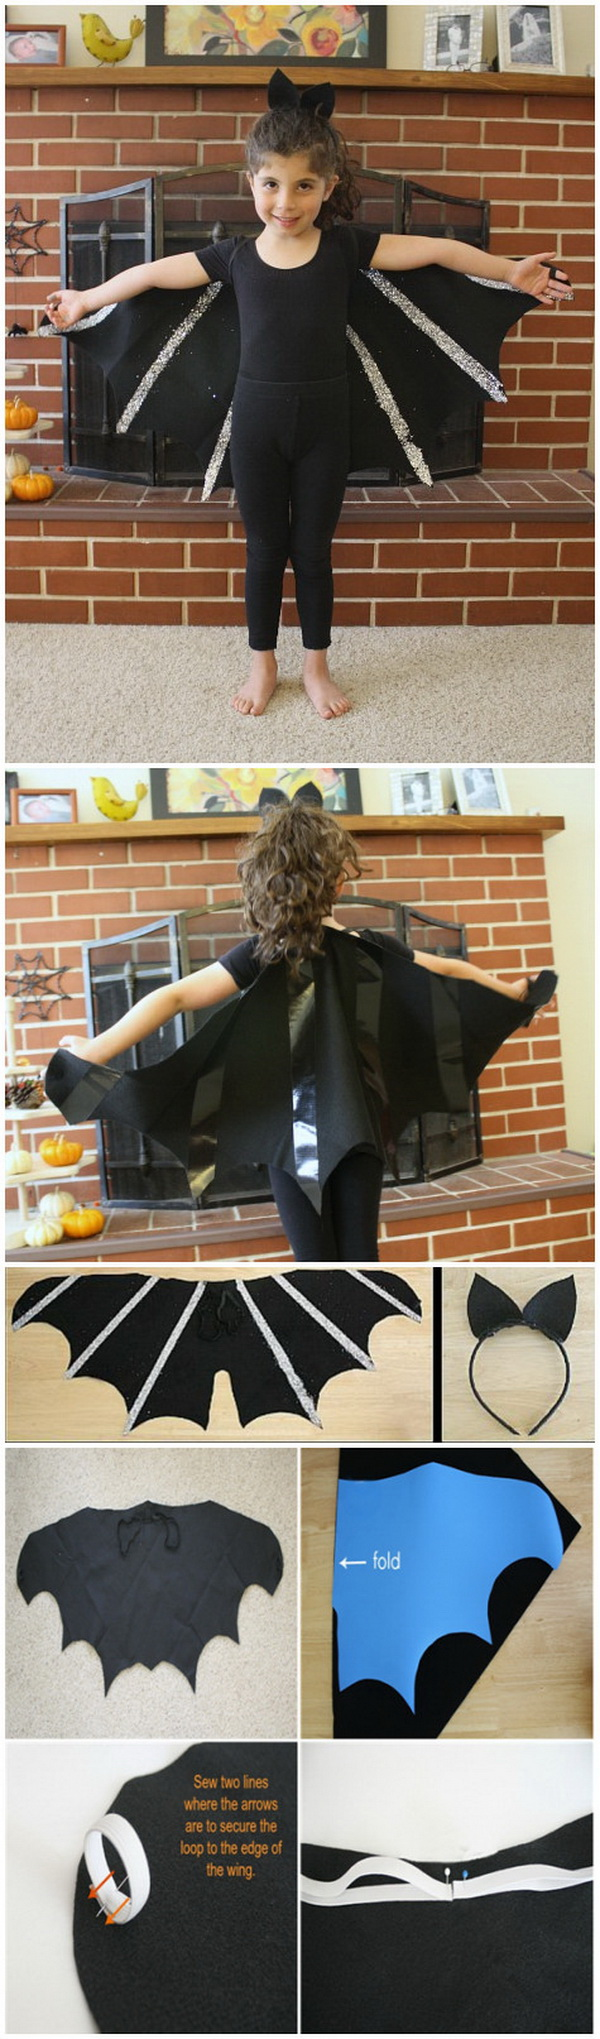 DIY Bat Costume for Kids.